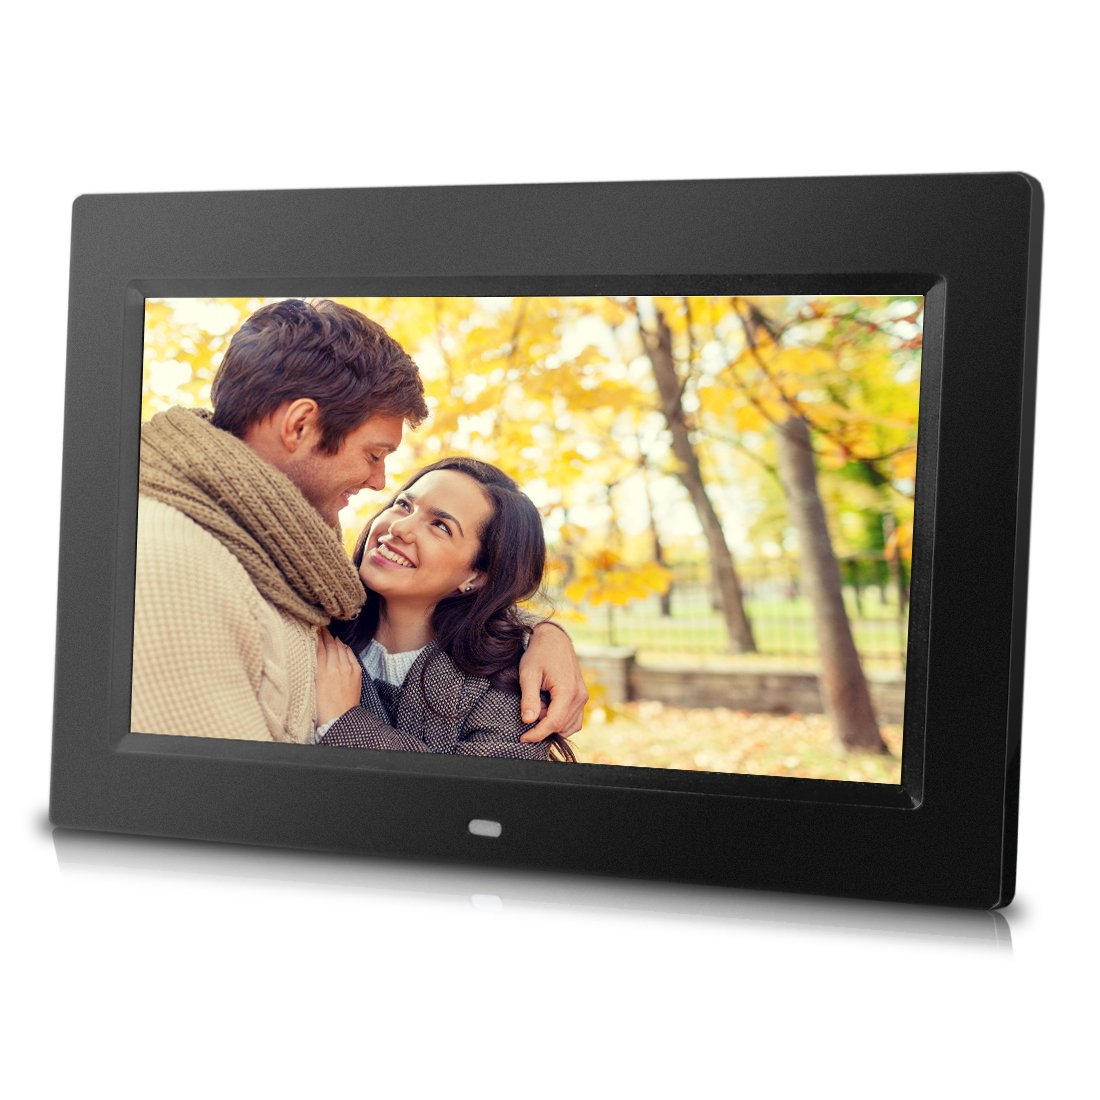 10 inch Digital Photo Frame w/ Remote Control [Upgraded Version]